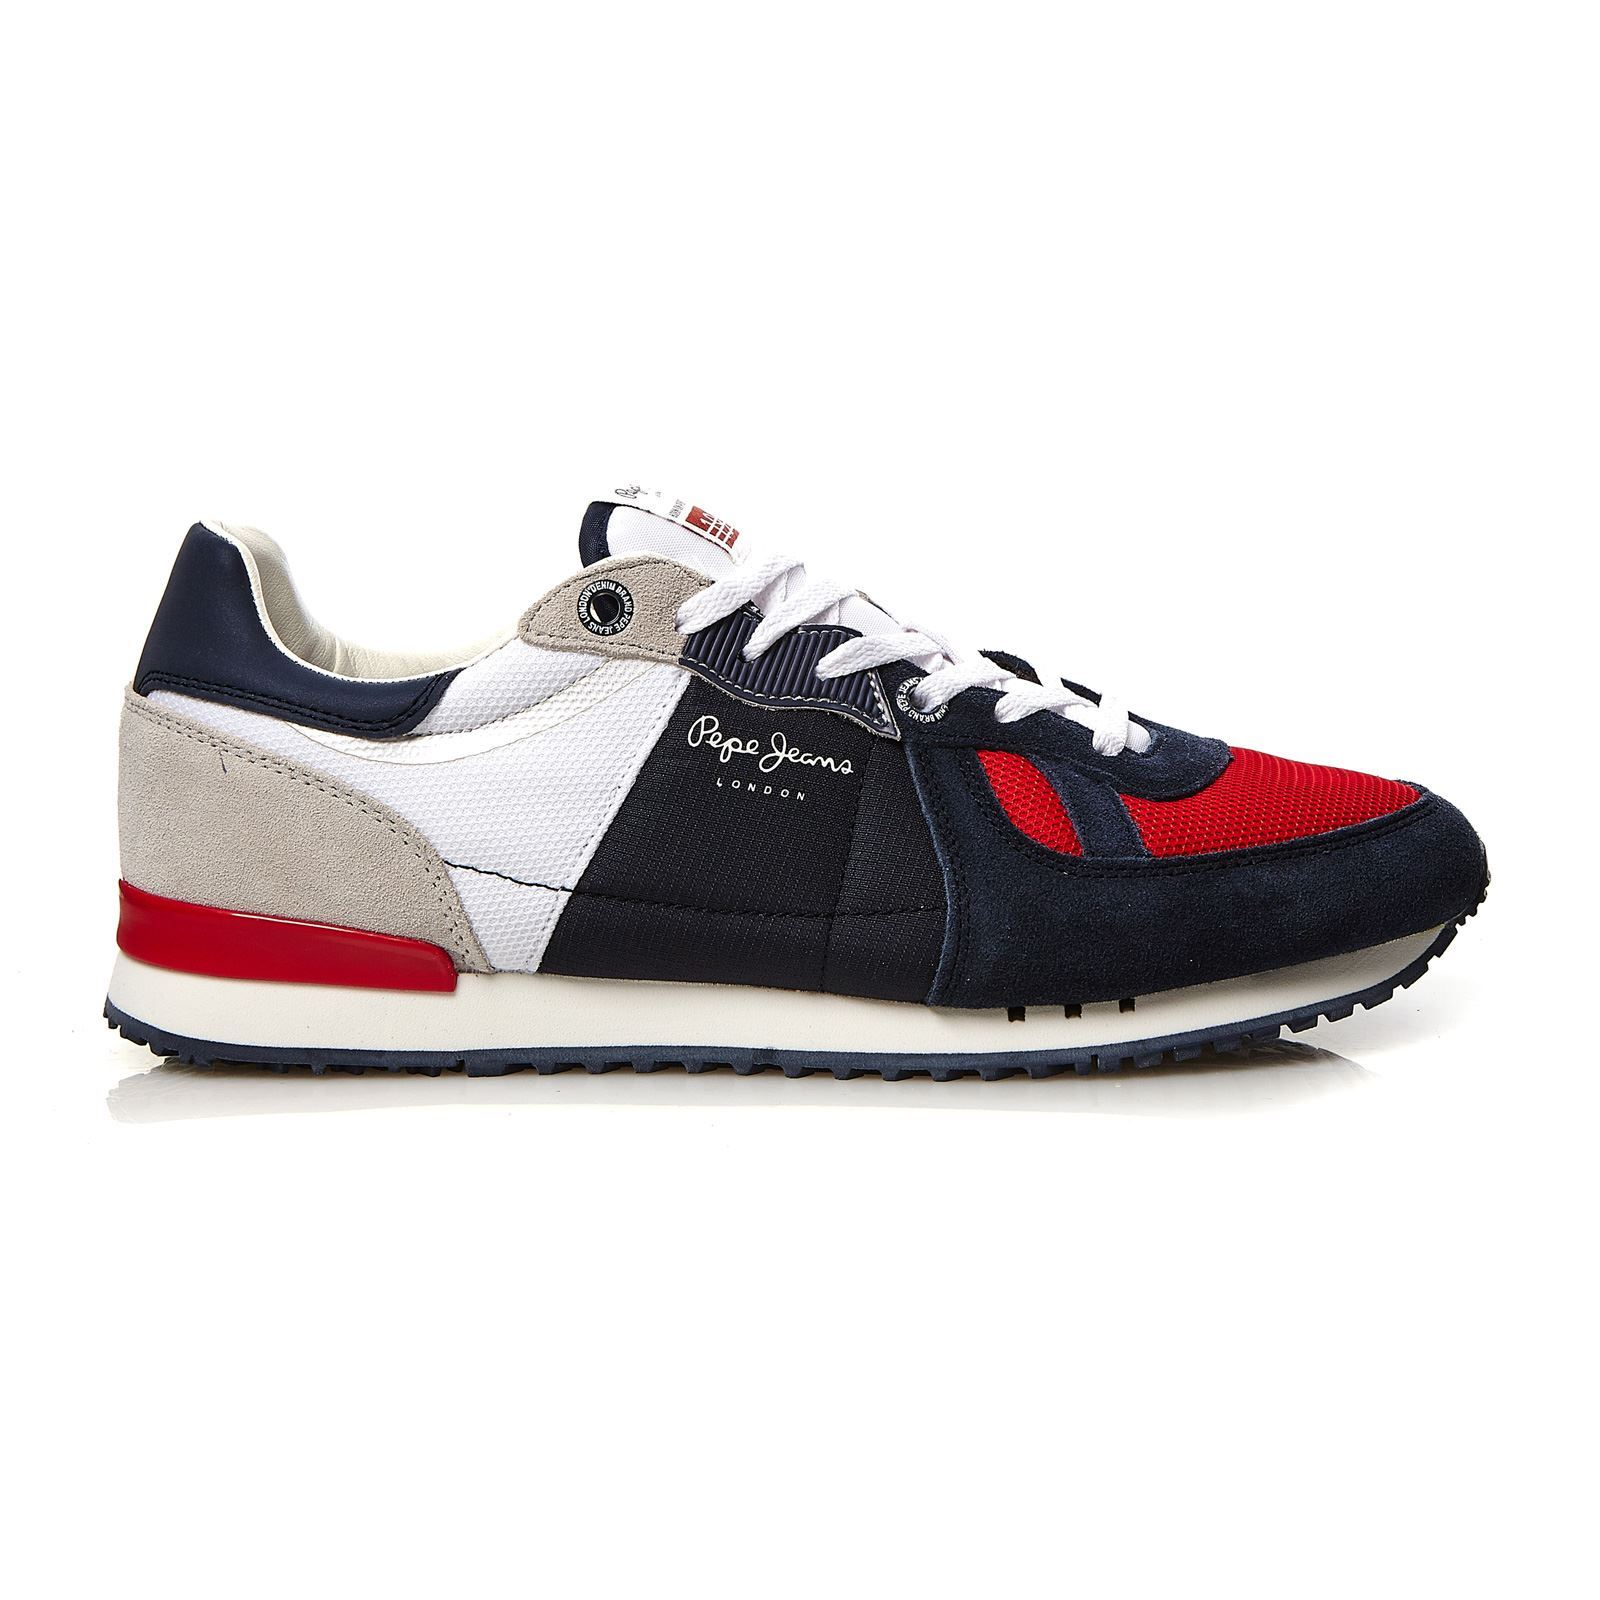 Pepe Jeans Footwear Tinker 1973 - Baskets - bleu  Baskets